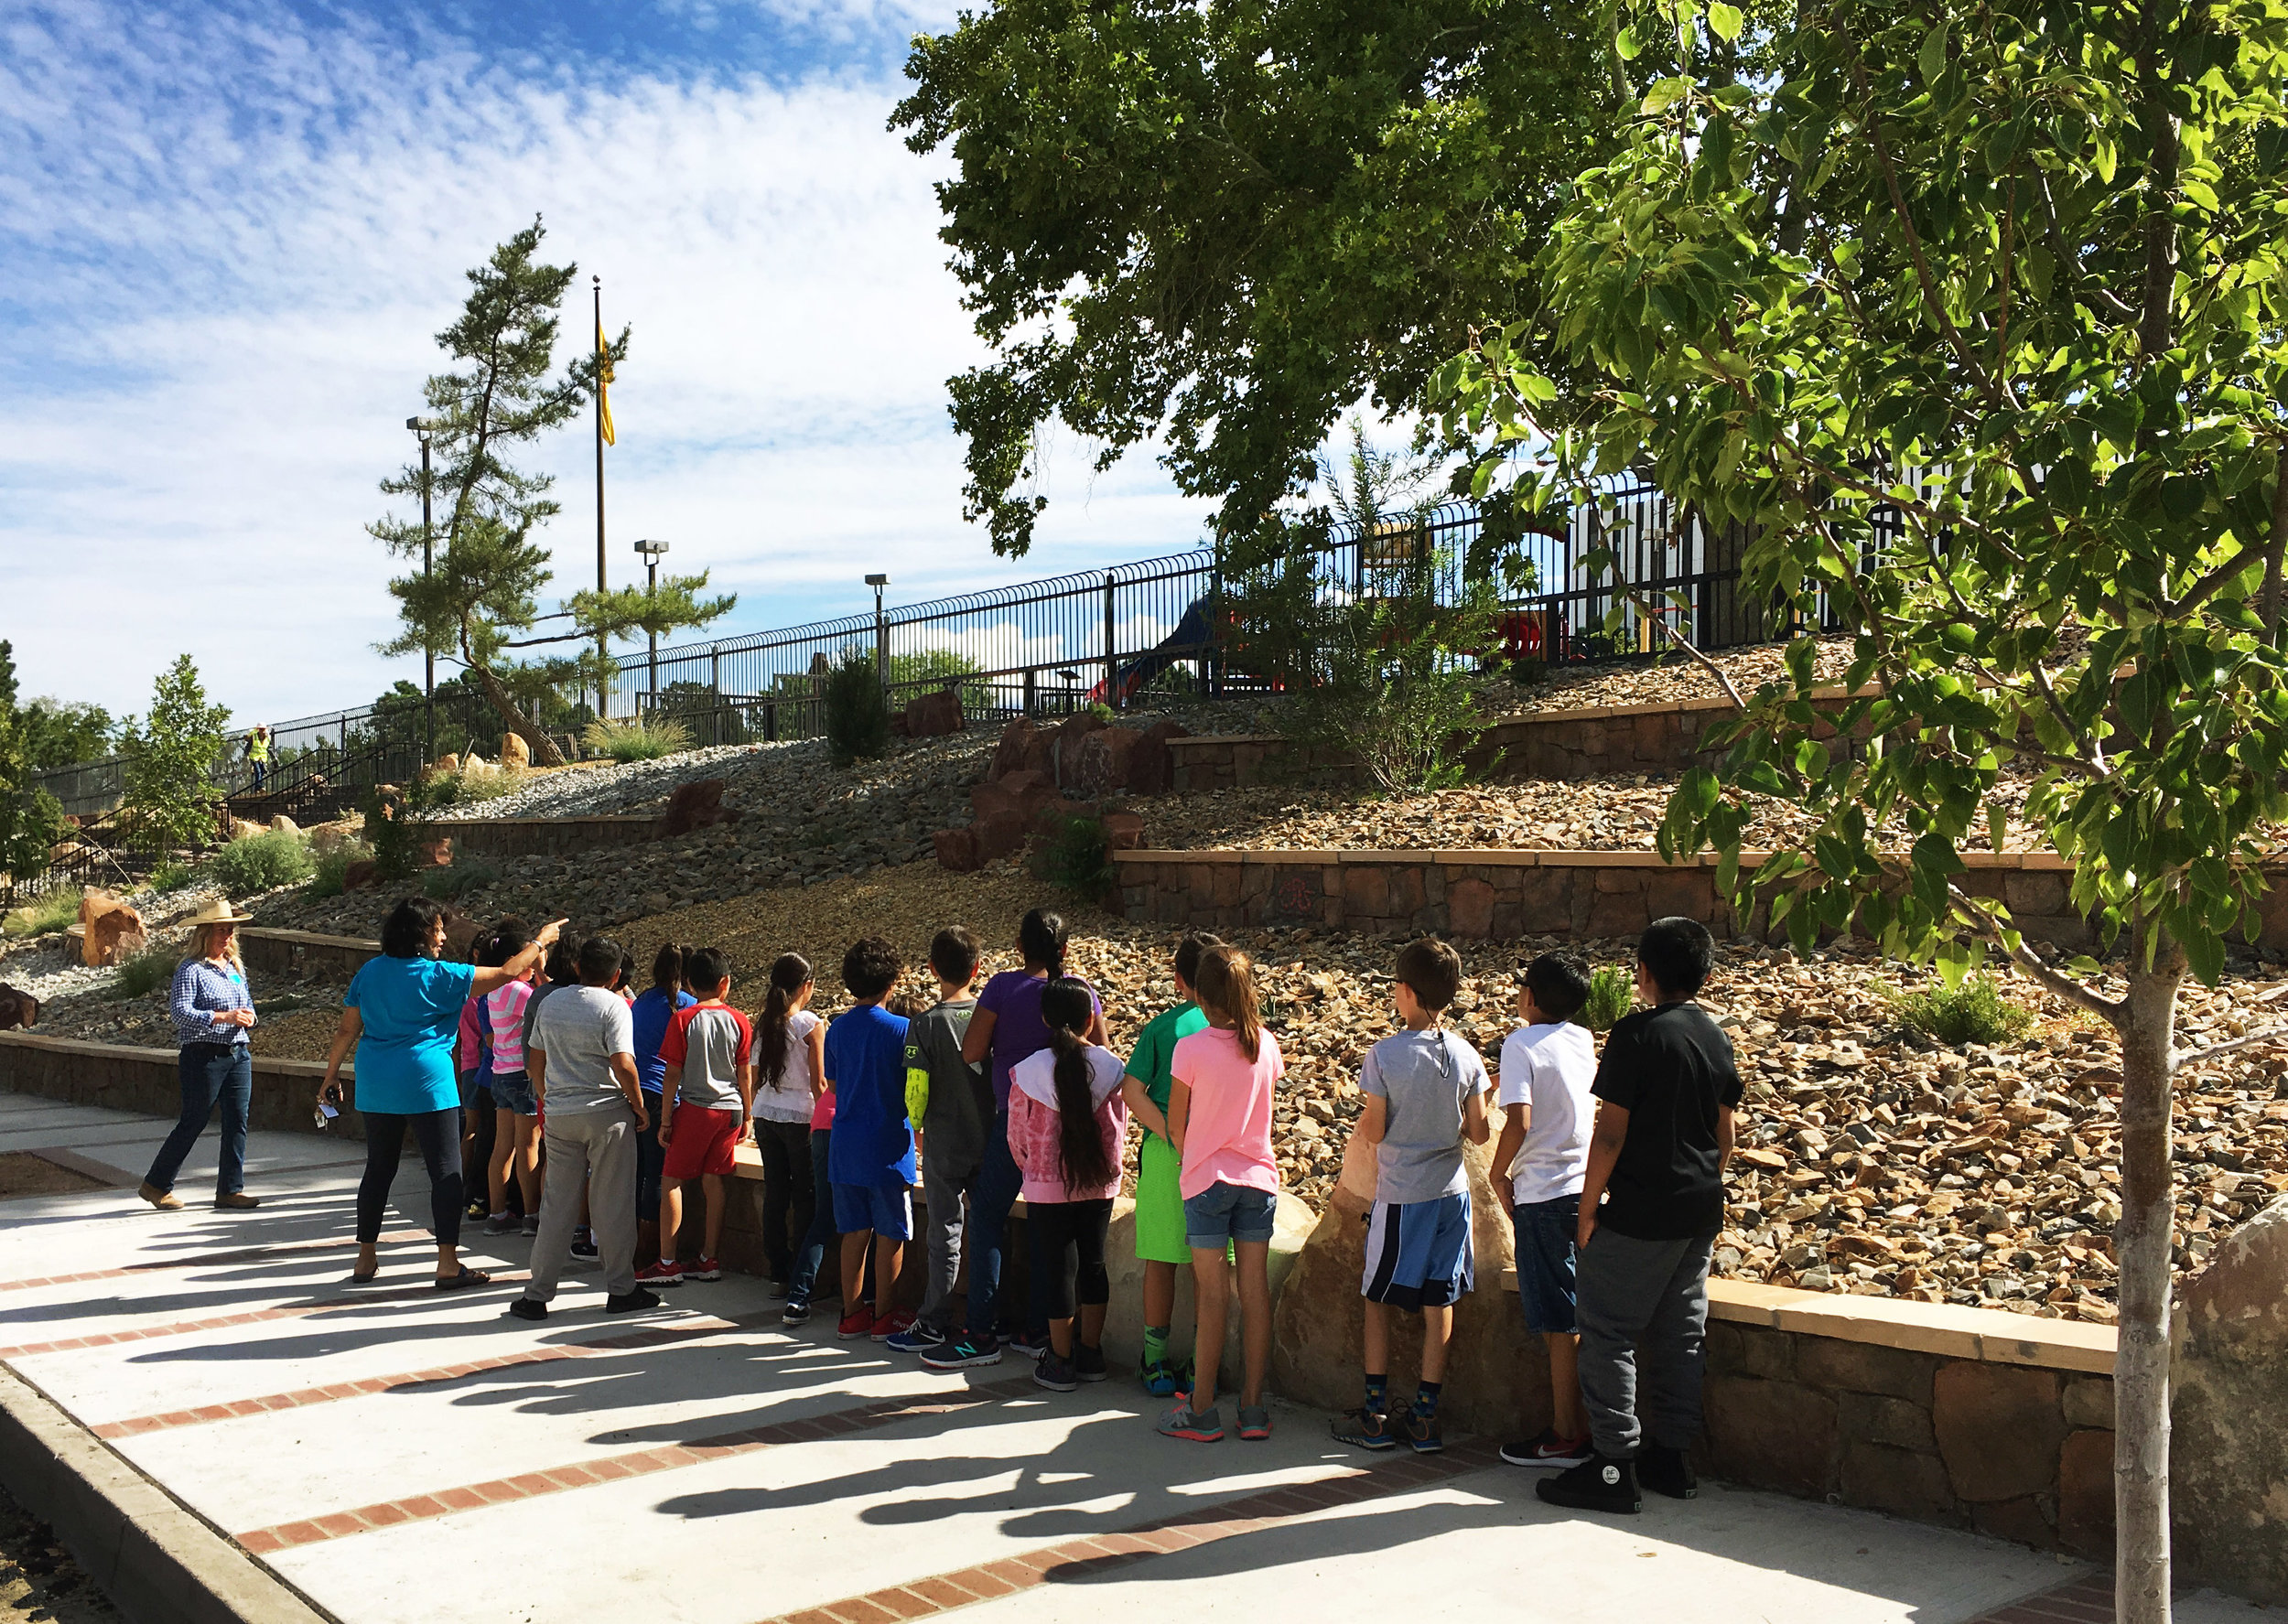 Schoolchildren taking in natural history lessons at Martineztown Park